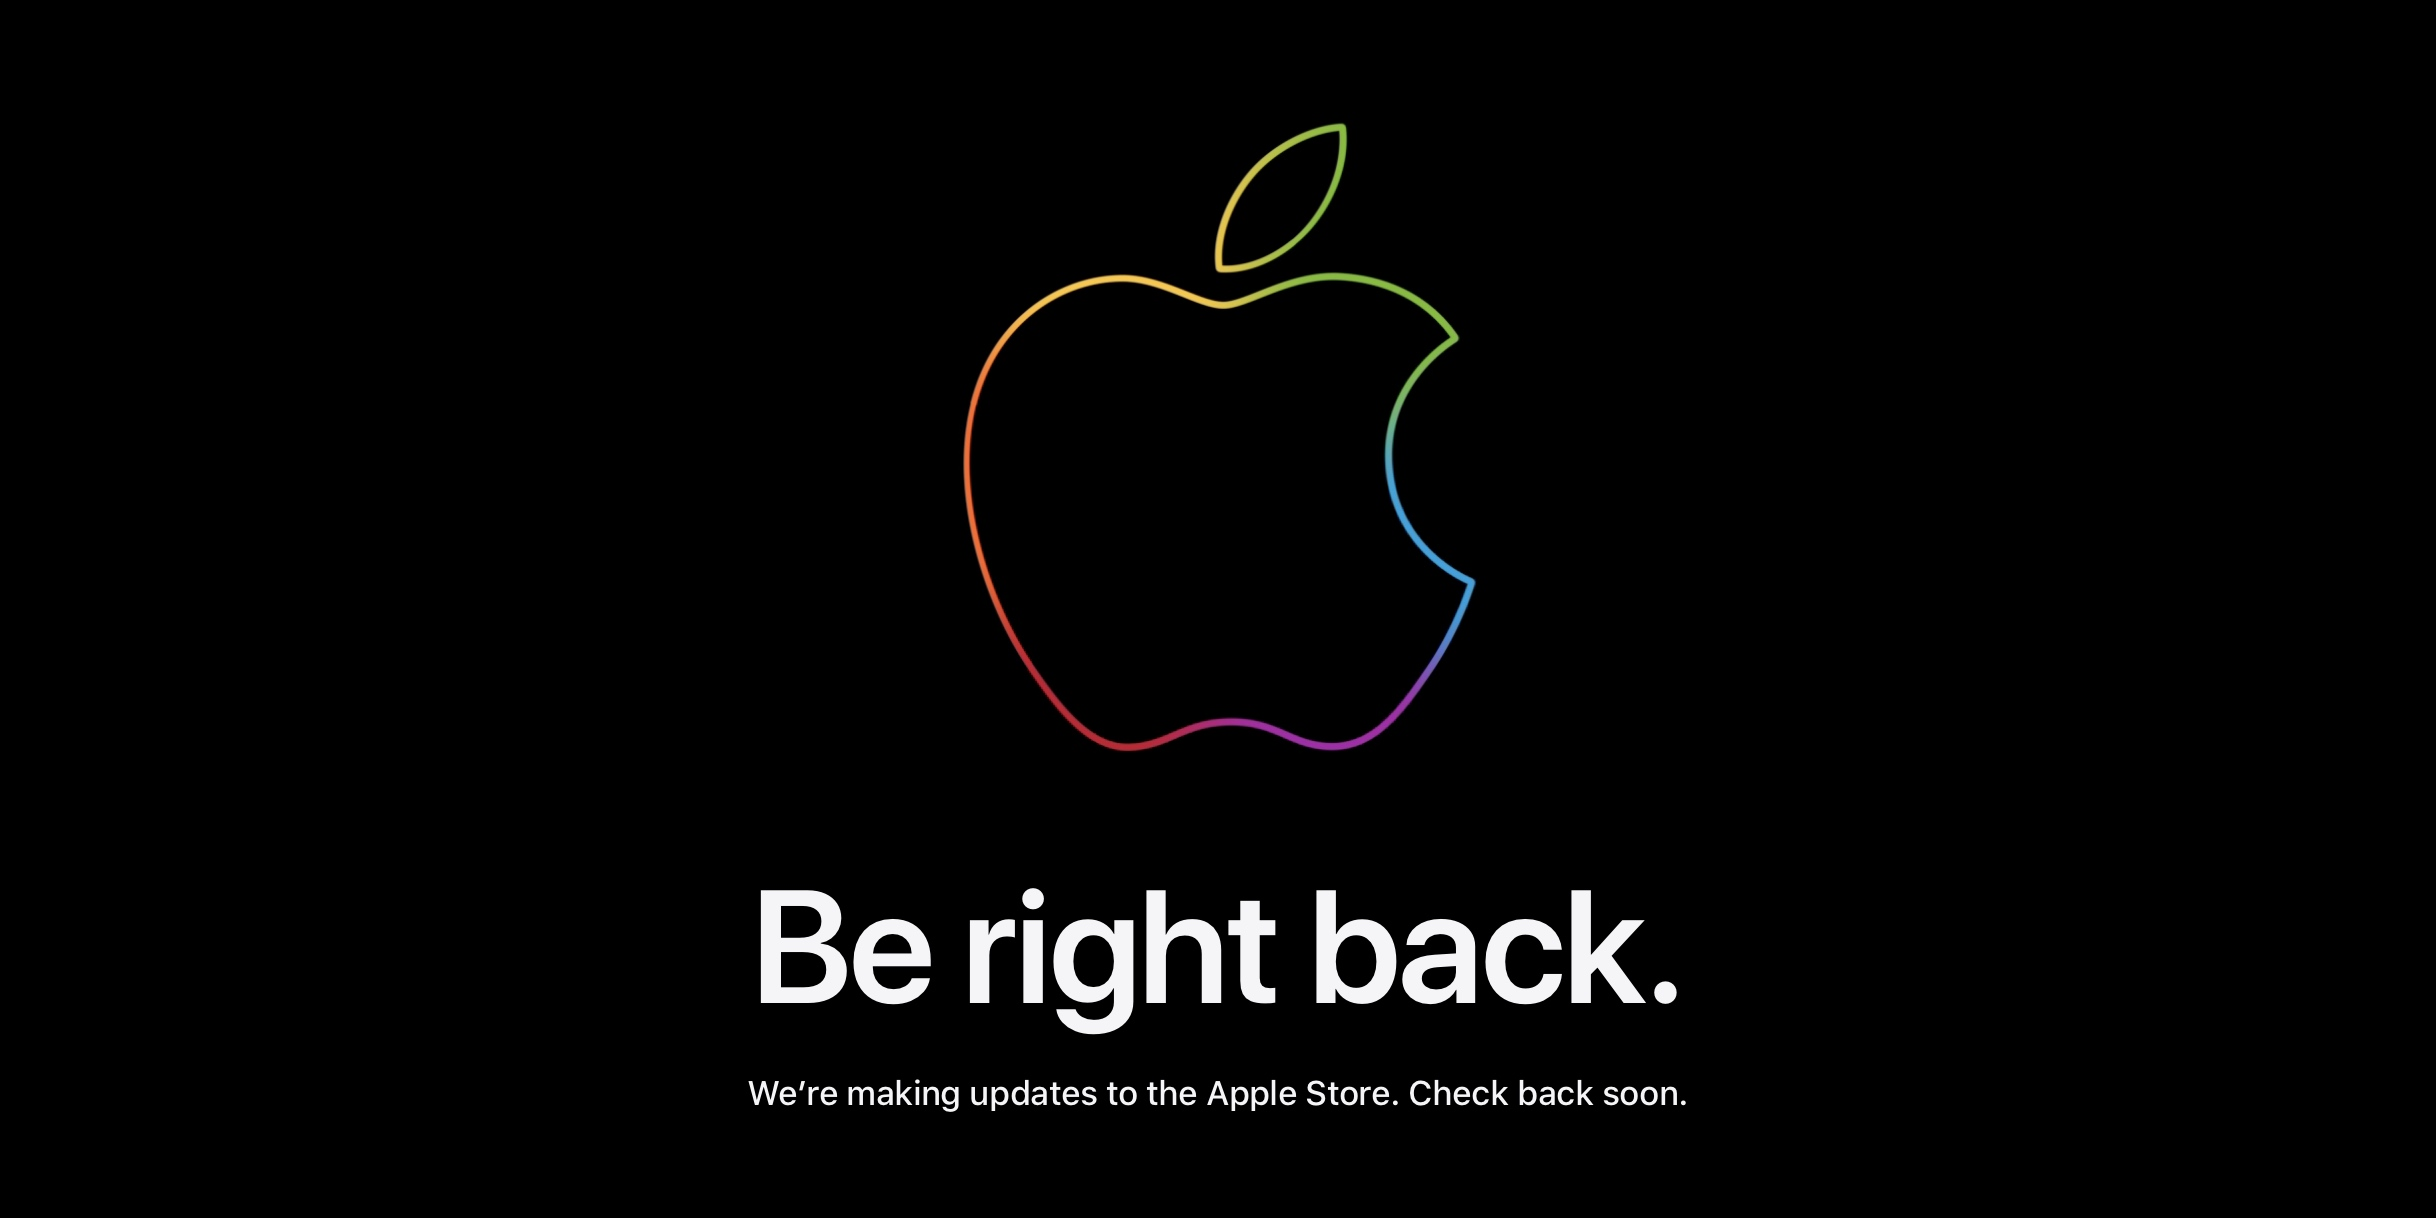 Apple Store is down: new iPad Pro, iMac and more expected at 'Spring Loaded' event